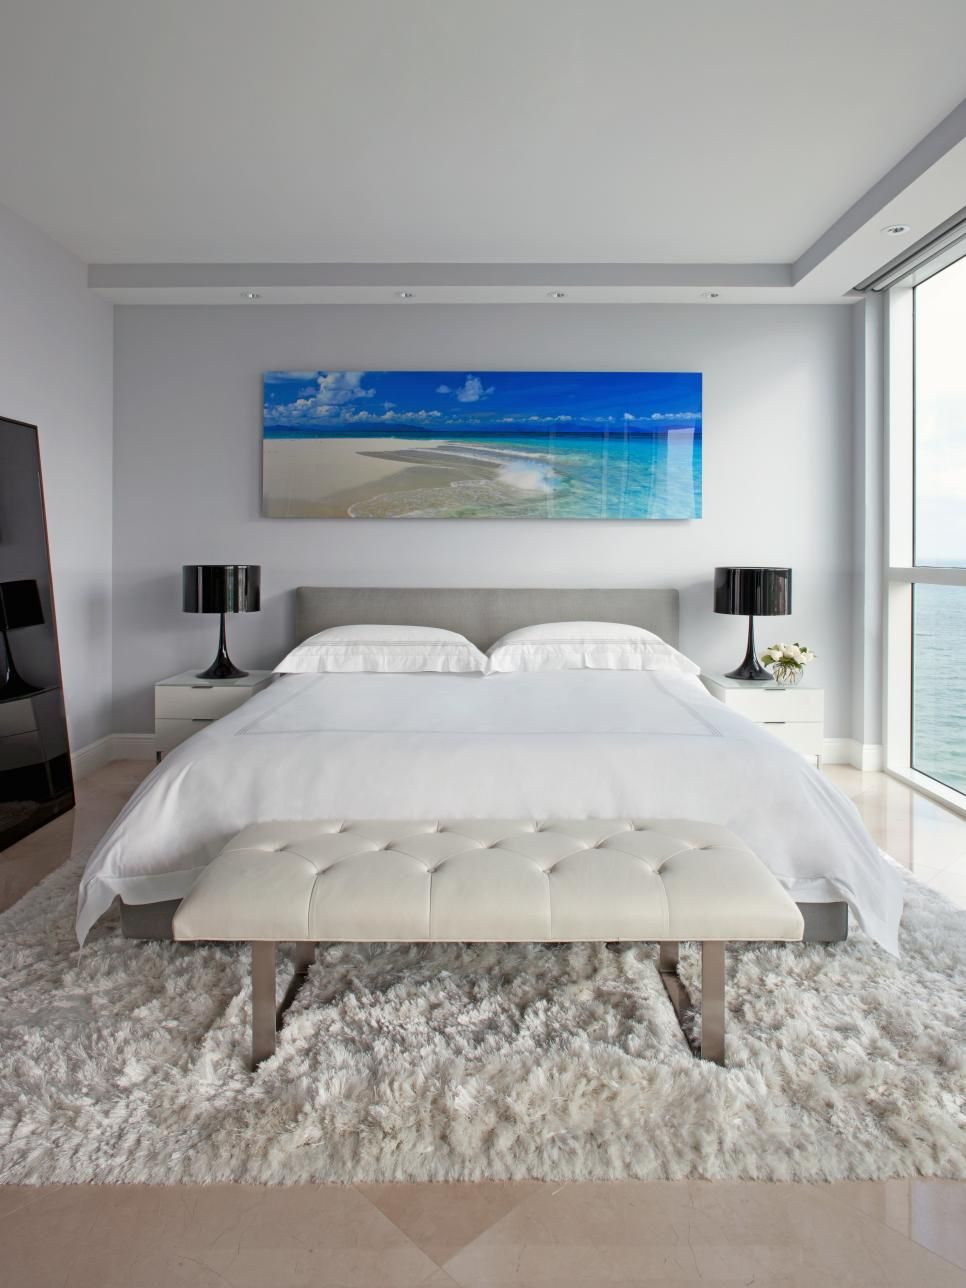 19 Feng Shui Secrets To Attract Love And Money Feng Shui Bedroom